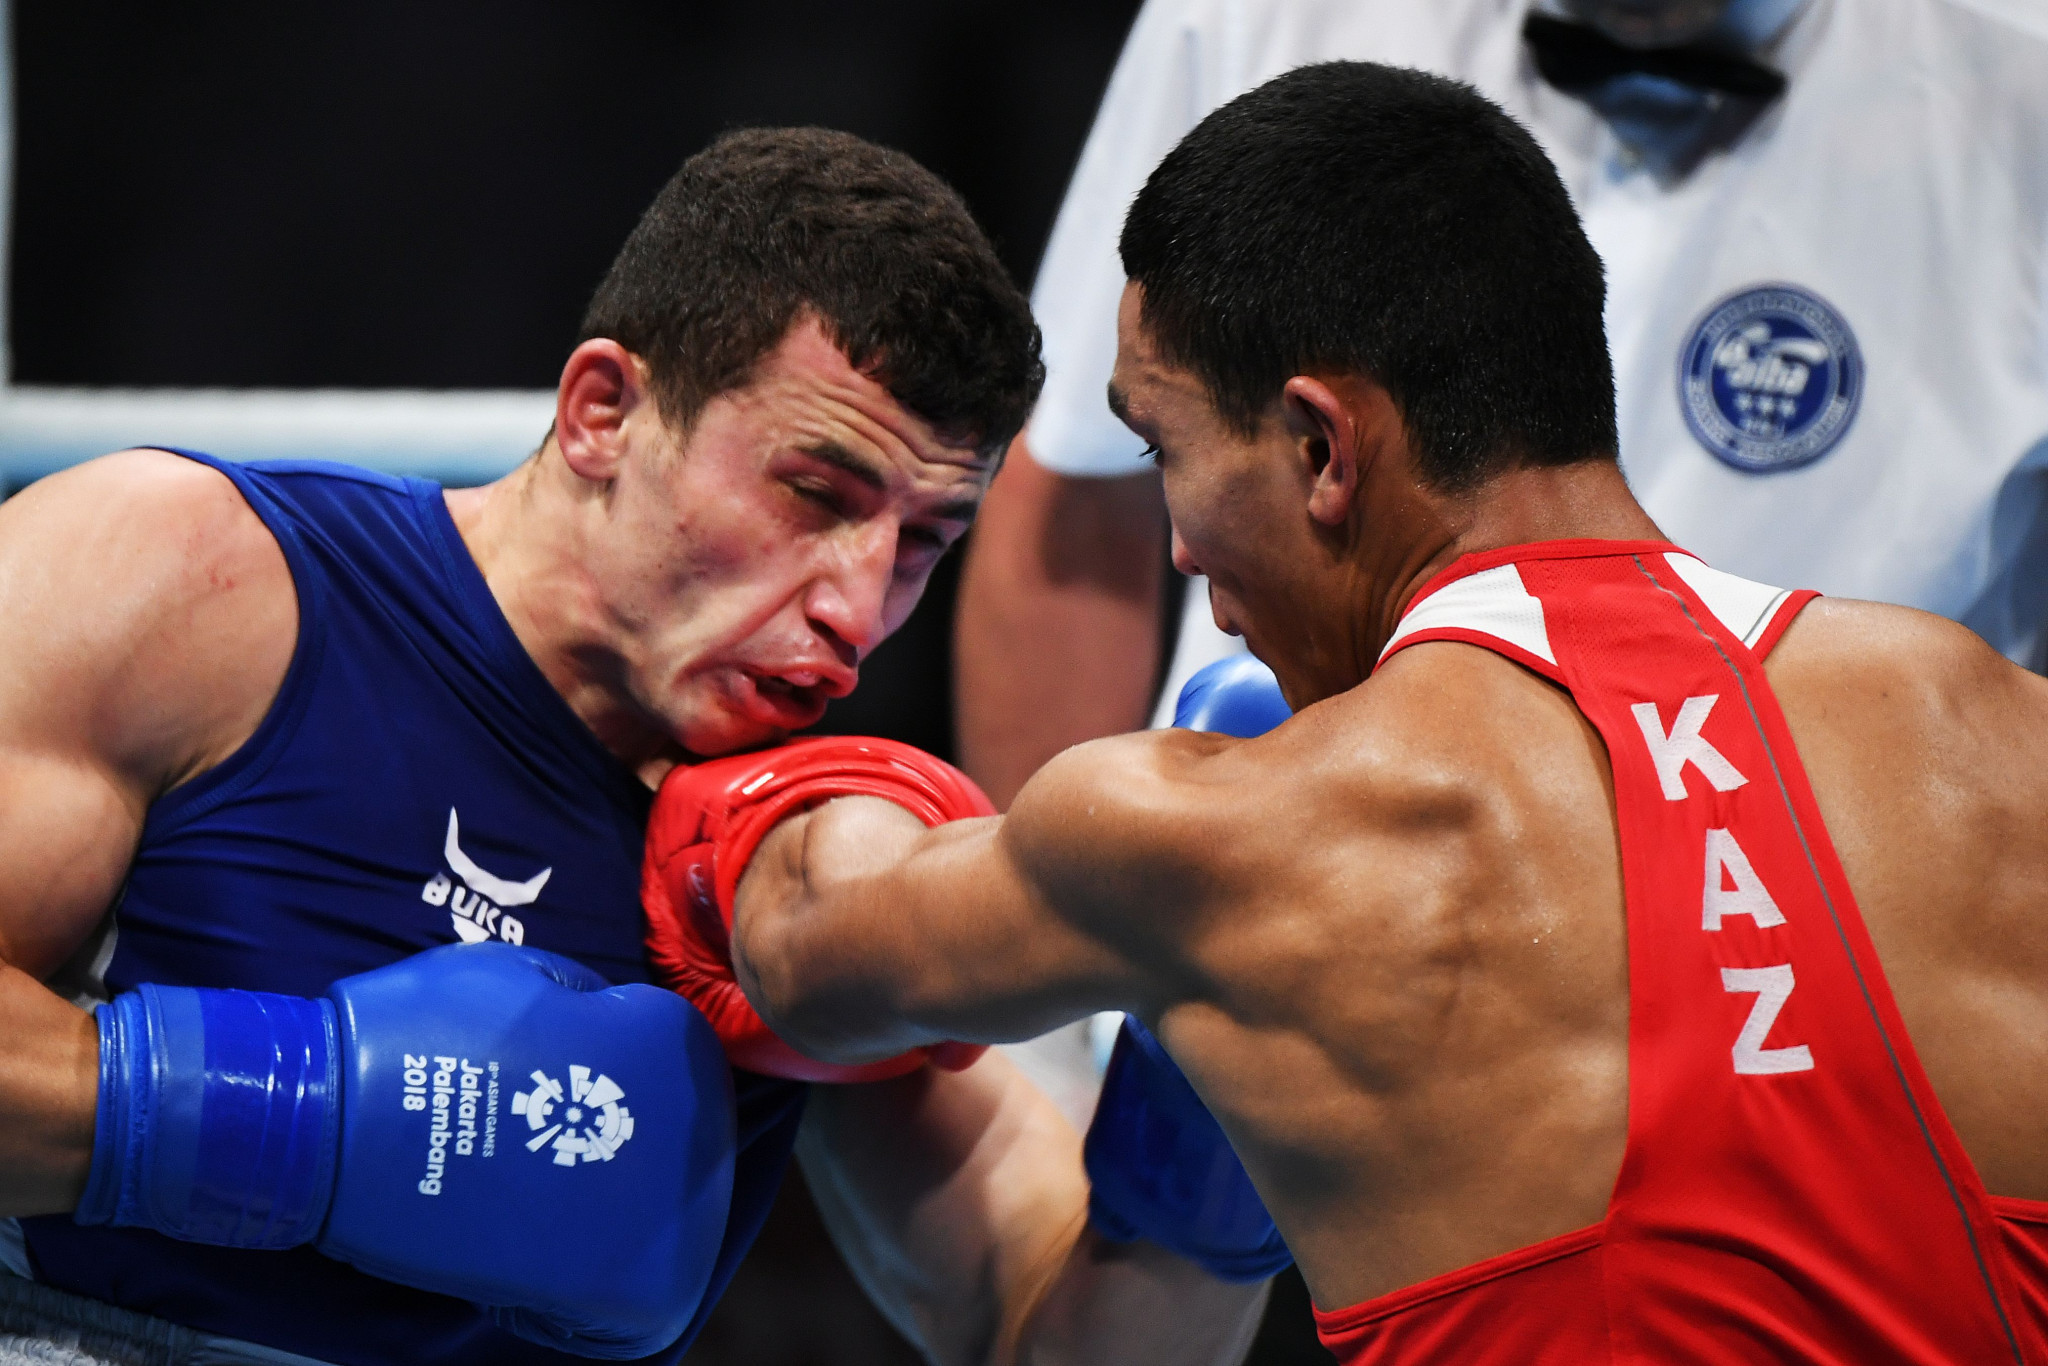 Defending champion Israil Madrimov, left, crashed out of the middleweight division after he suffered defeat to Tursynbay Kulakhmet of Kazakhstan ©Getty Images